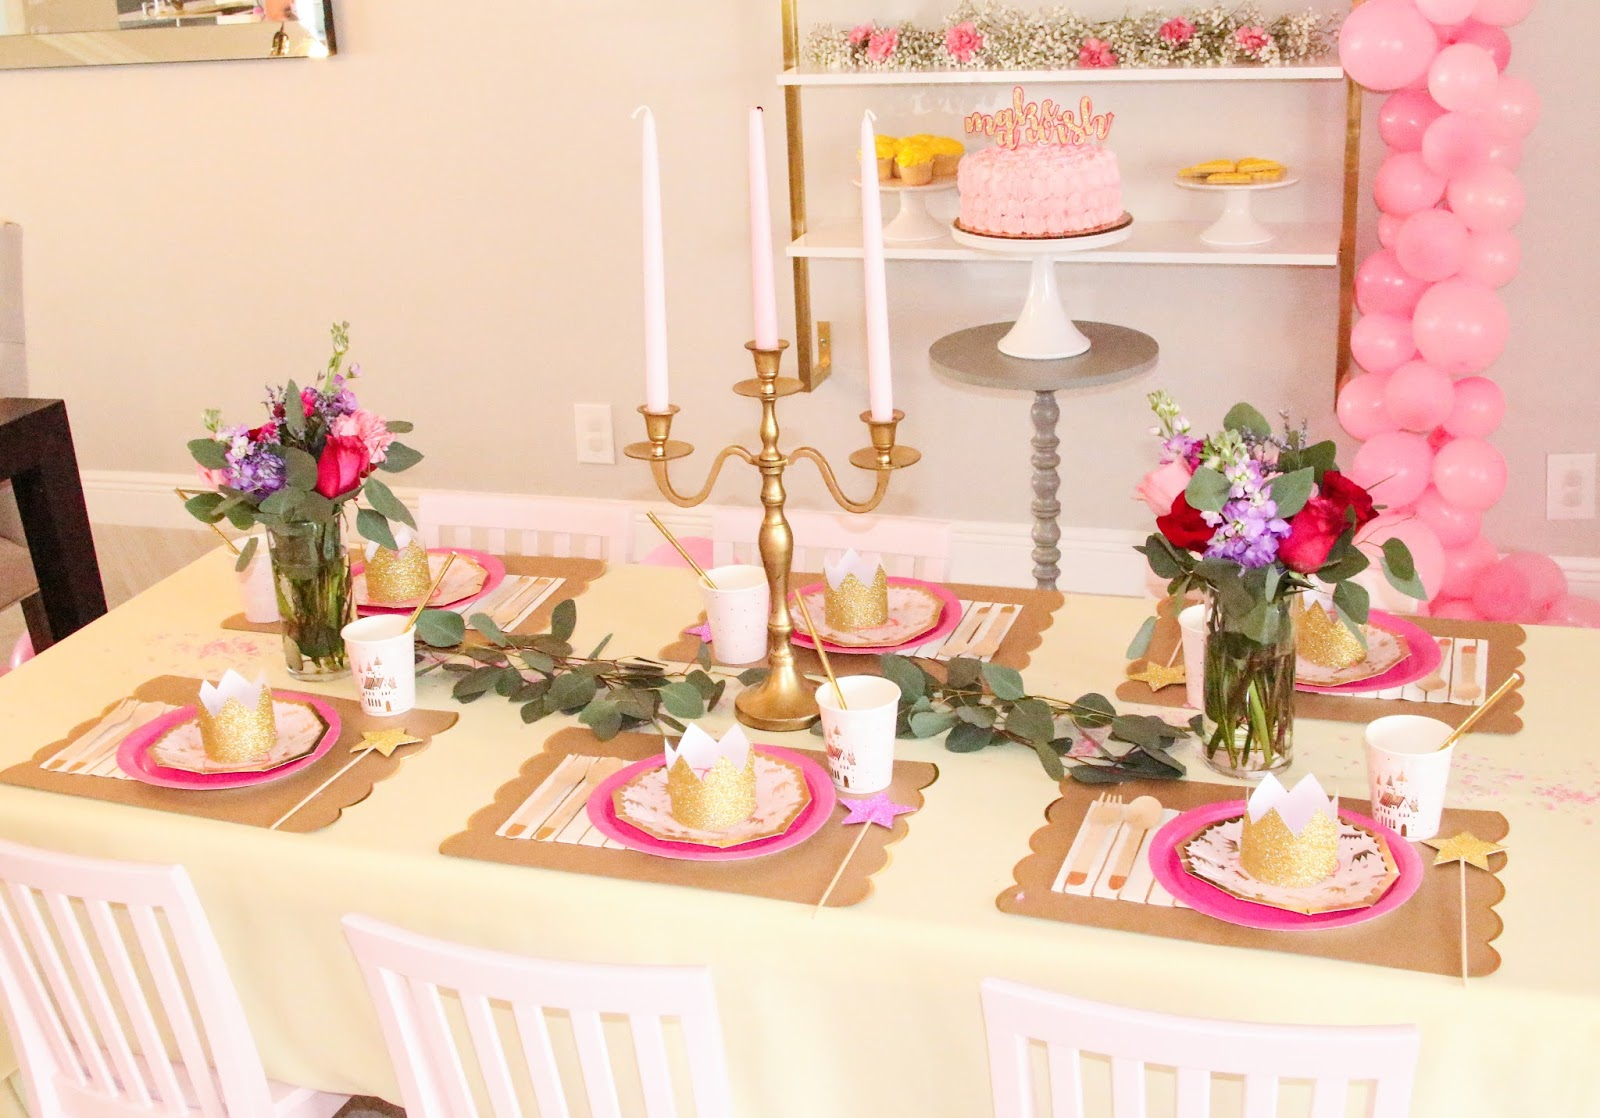 Beauty and the Beast Garden Party by popular Florida party planning blogger Celebration Stylist